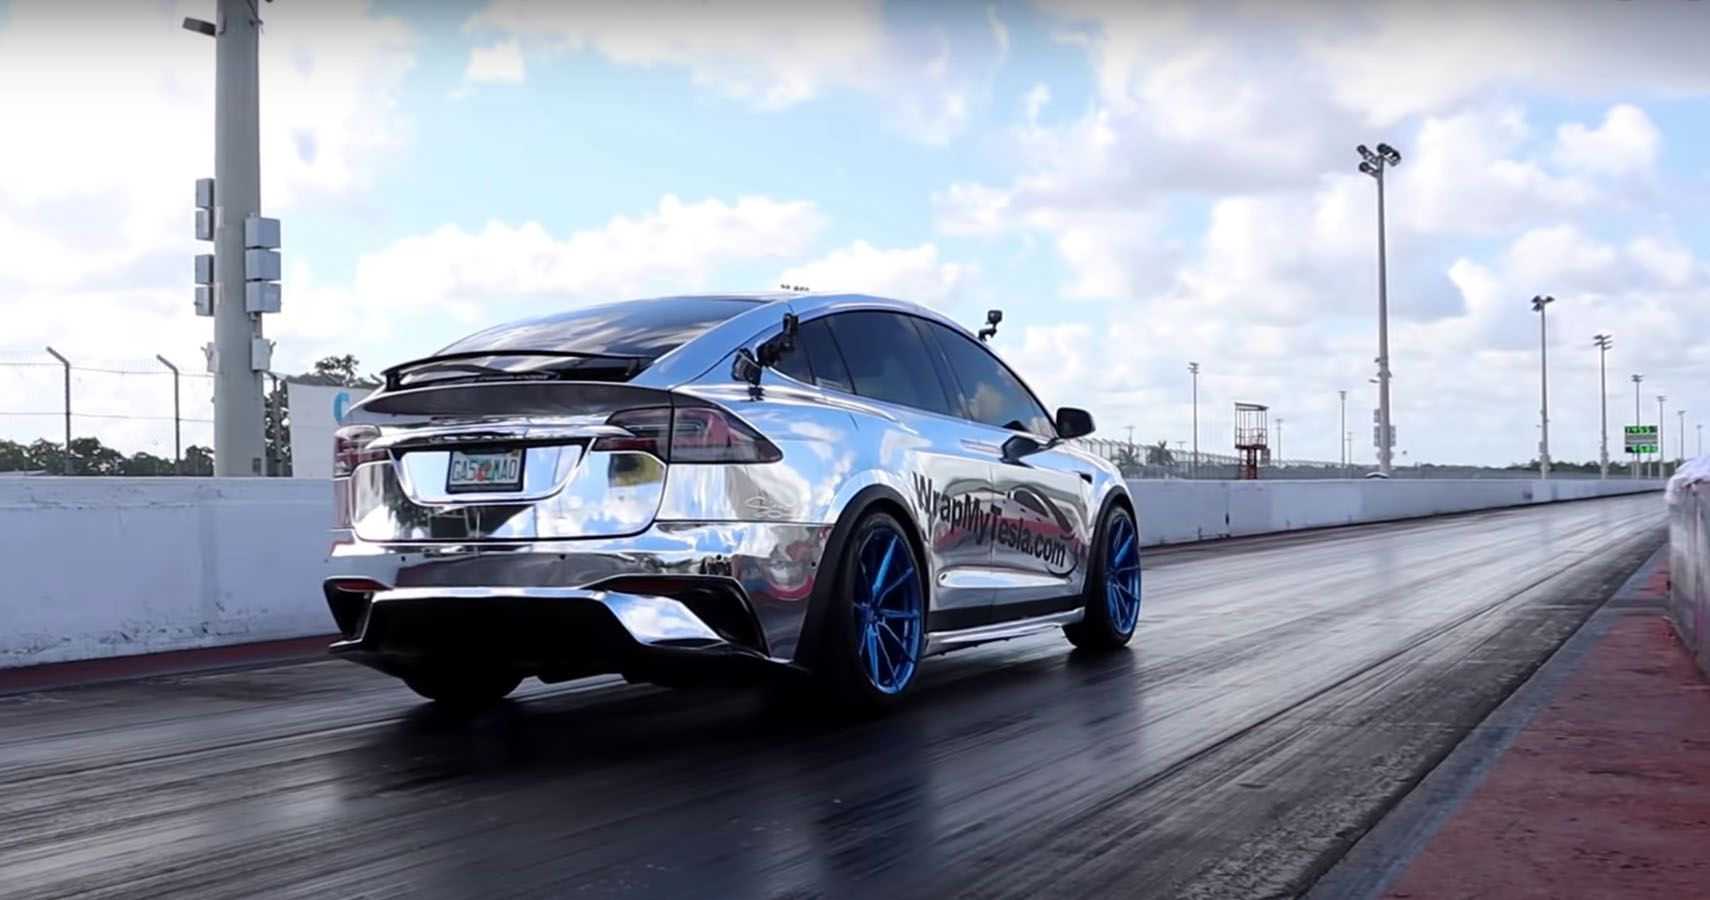 Tesla Model X Performance With Cheetah Stance Runs World Record Quarter-Mile